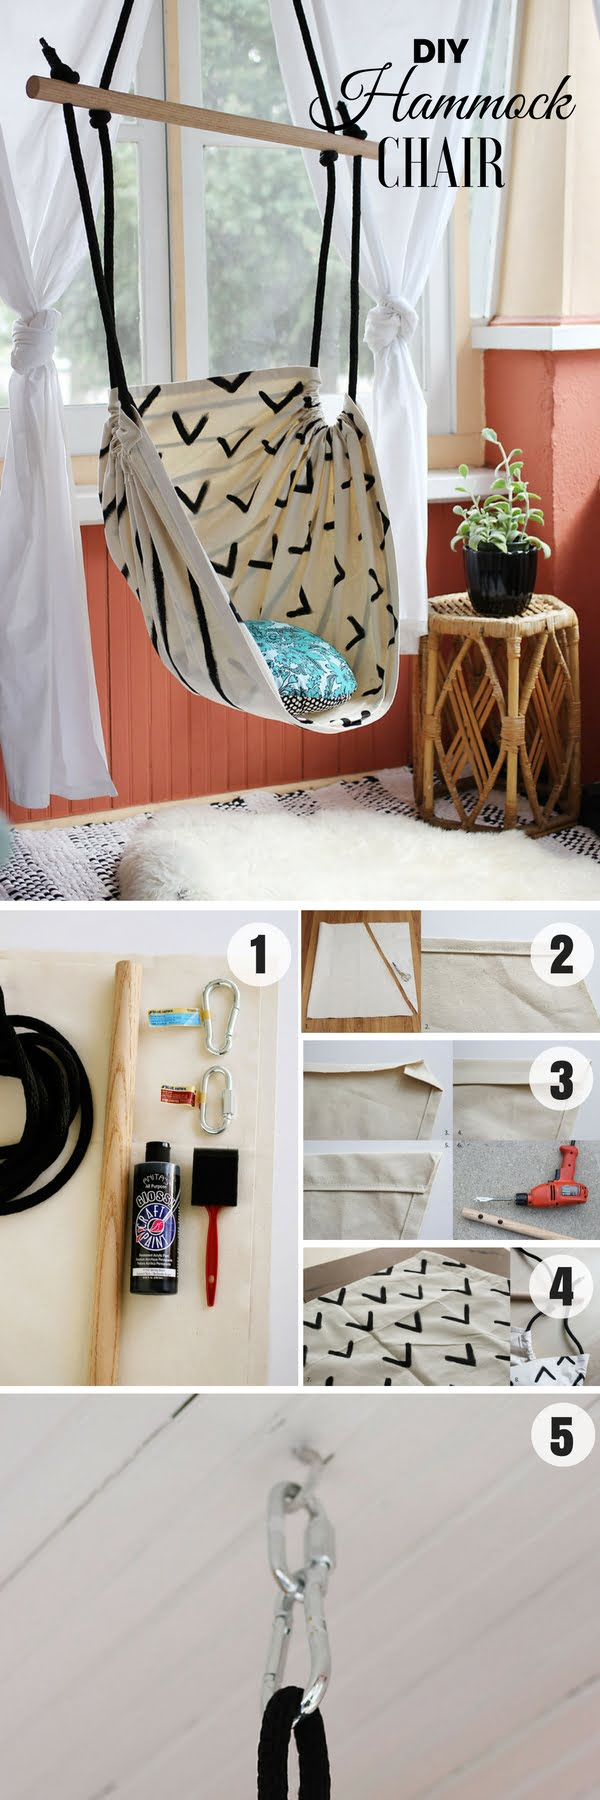 16 Beautiful DIY Bedroom Decor Ideas That Will Inspire You - Check out how to make an easy DIY Hammock Chair for bedroom decor